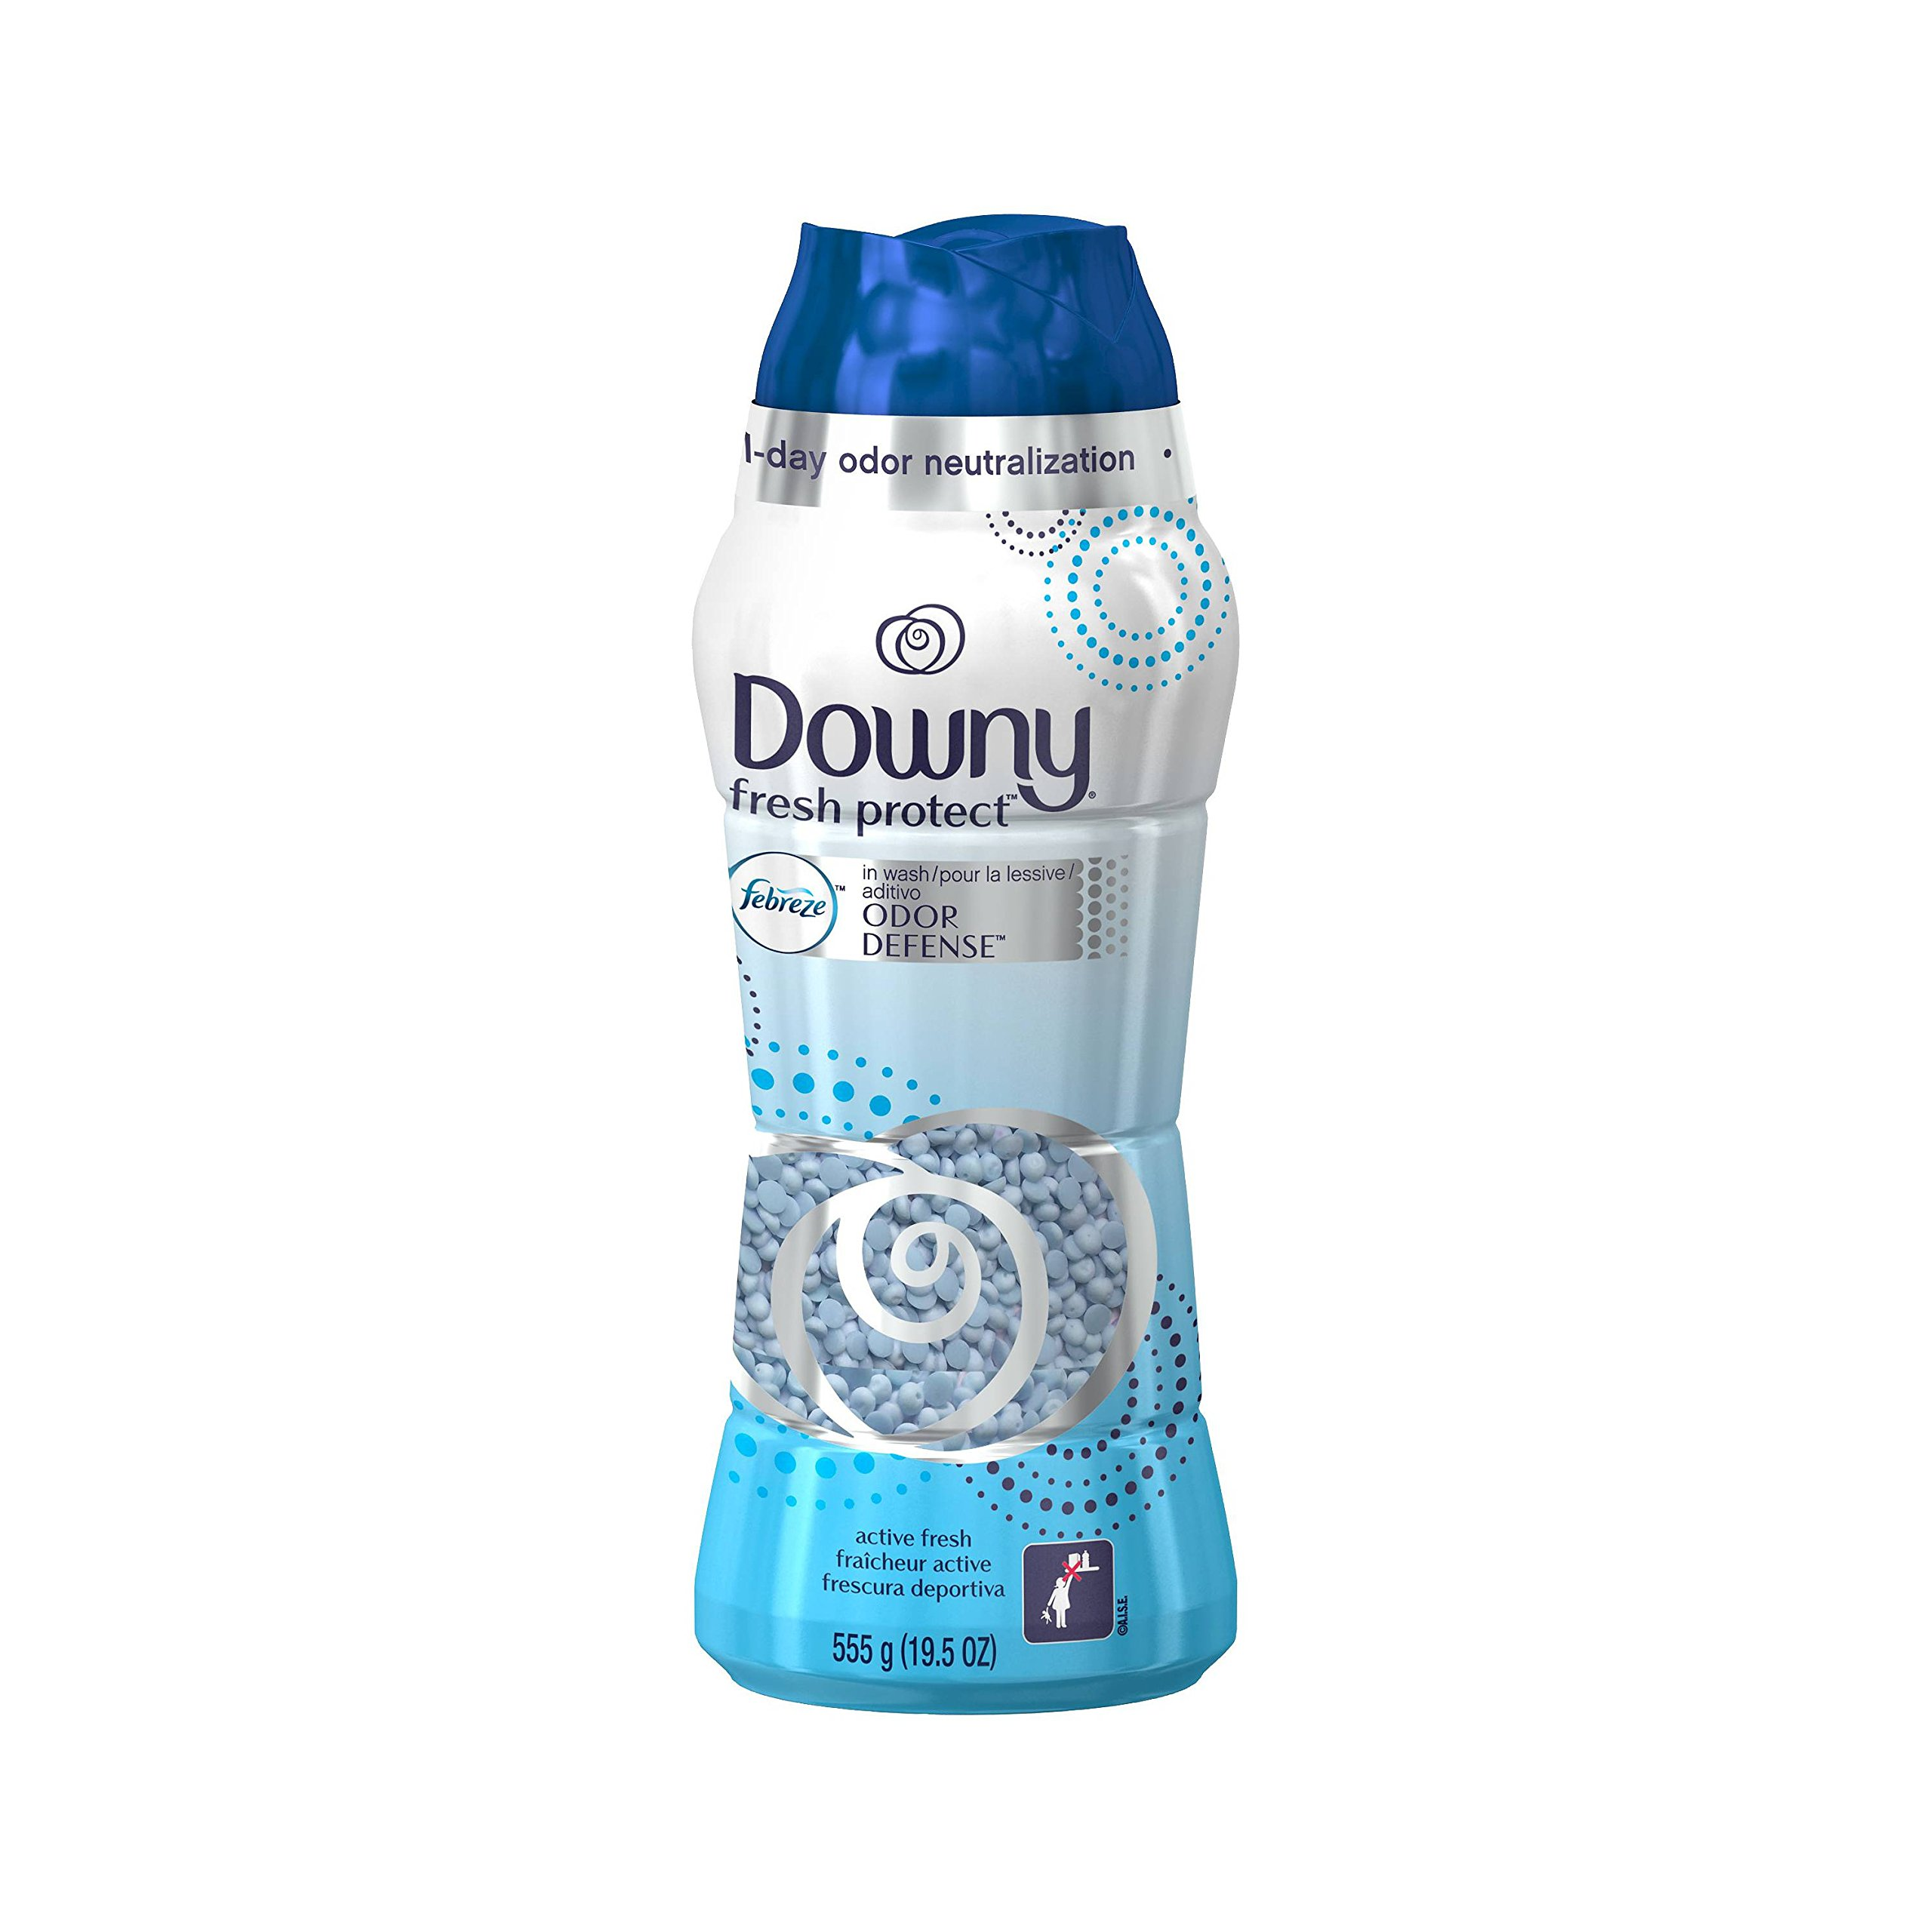 Downy Fresh Protect In-Wash Odor Shield Laundry Beads - Active Fresh Scent - 19.5 oz (pack of 1) by Laundry Beads